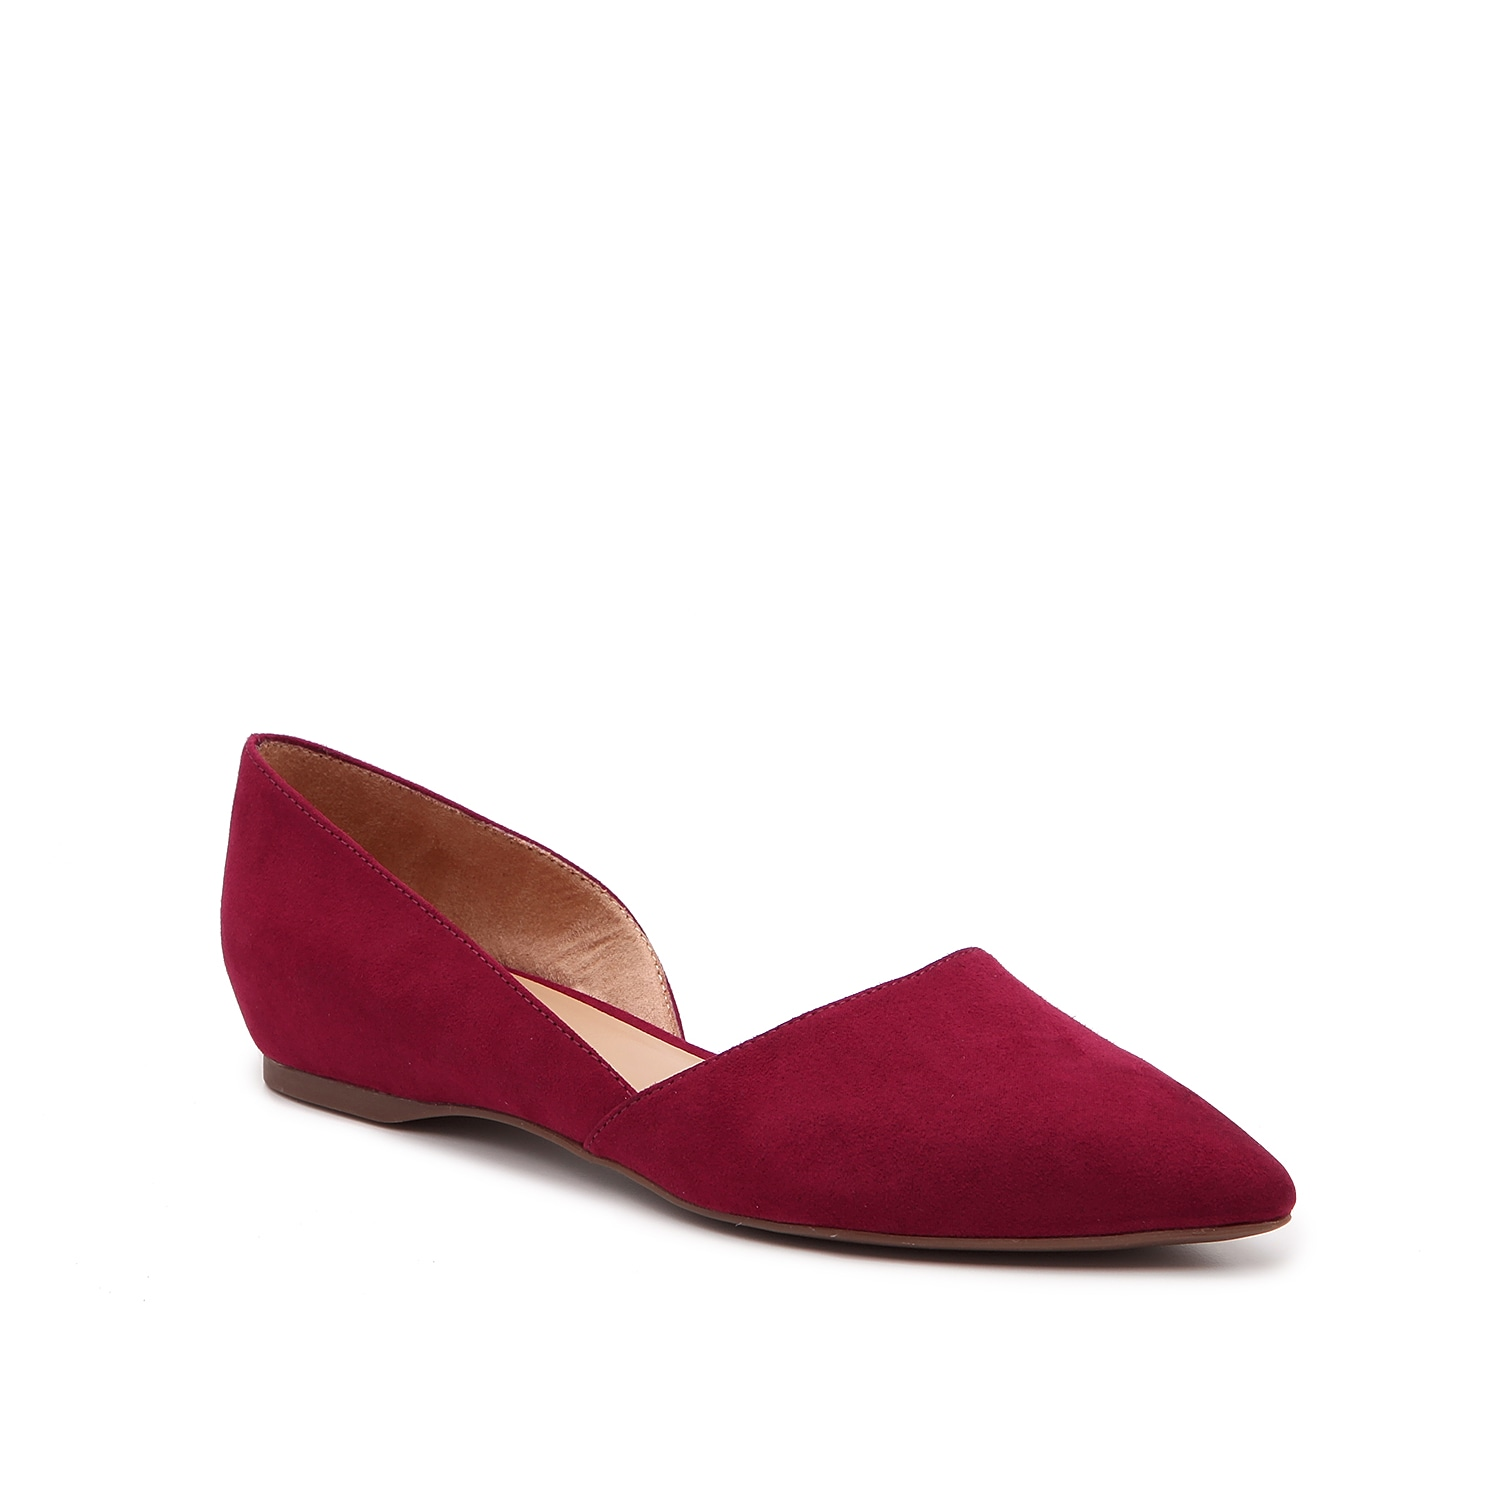 The Tamara flat from Naturalizer will update your tailored looks in a modern way. With d\\\'Orsay styling and a sleek pointed toe, this slip-on will become an instant staple in your closet.